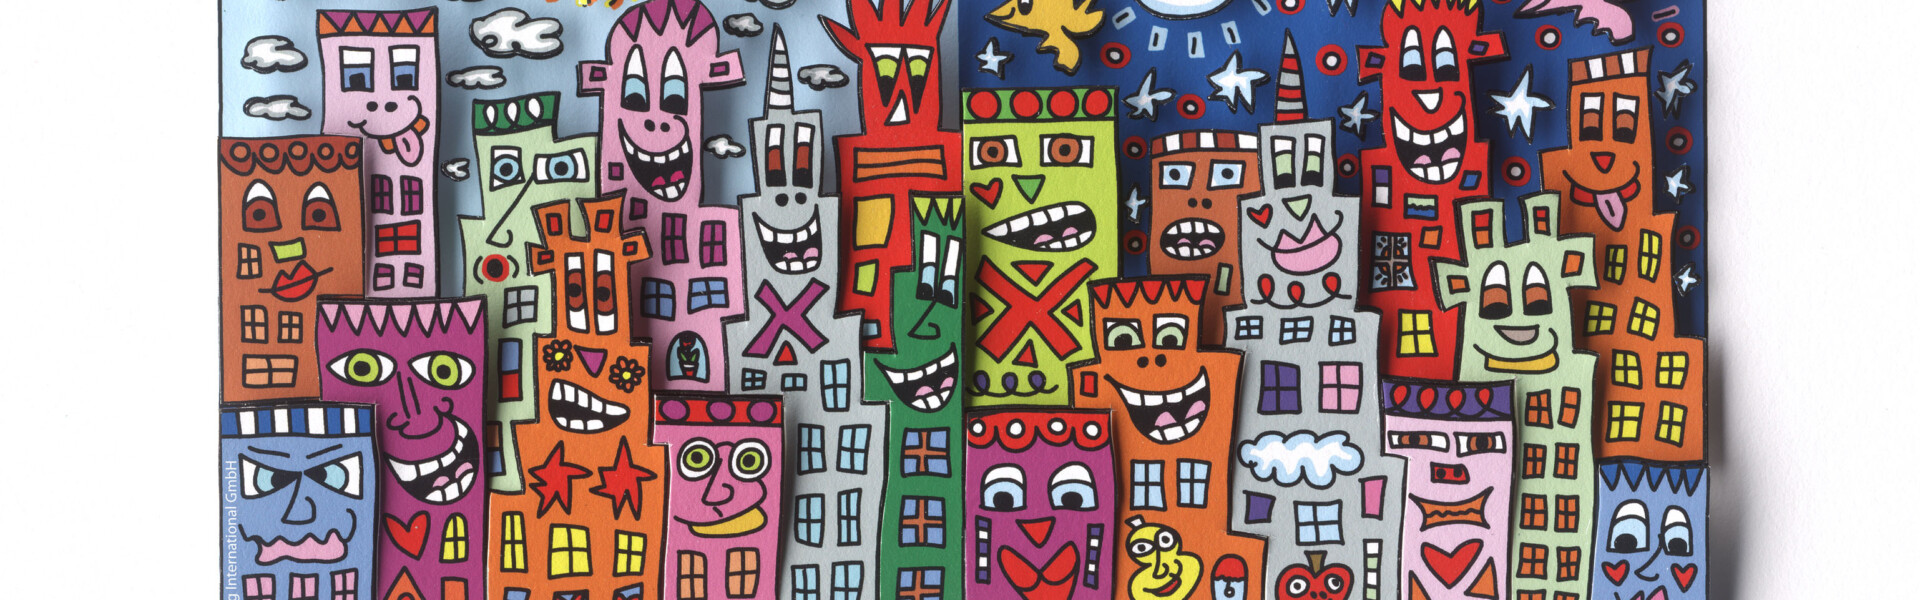 "James Rizzi, 3D-Papierskulptur, ""DAY OR NIGHT – MY CITY IS BRIGHT"" © Art Licensing Int. GmbH"